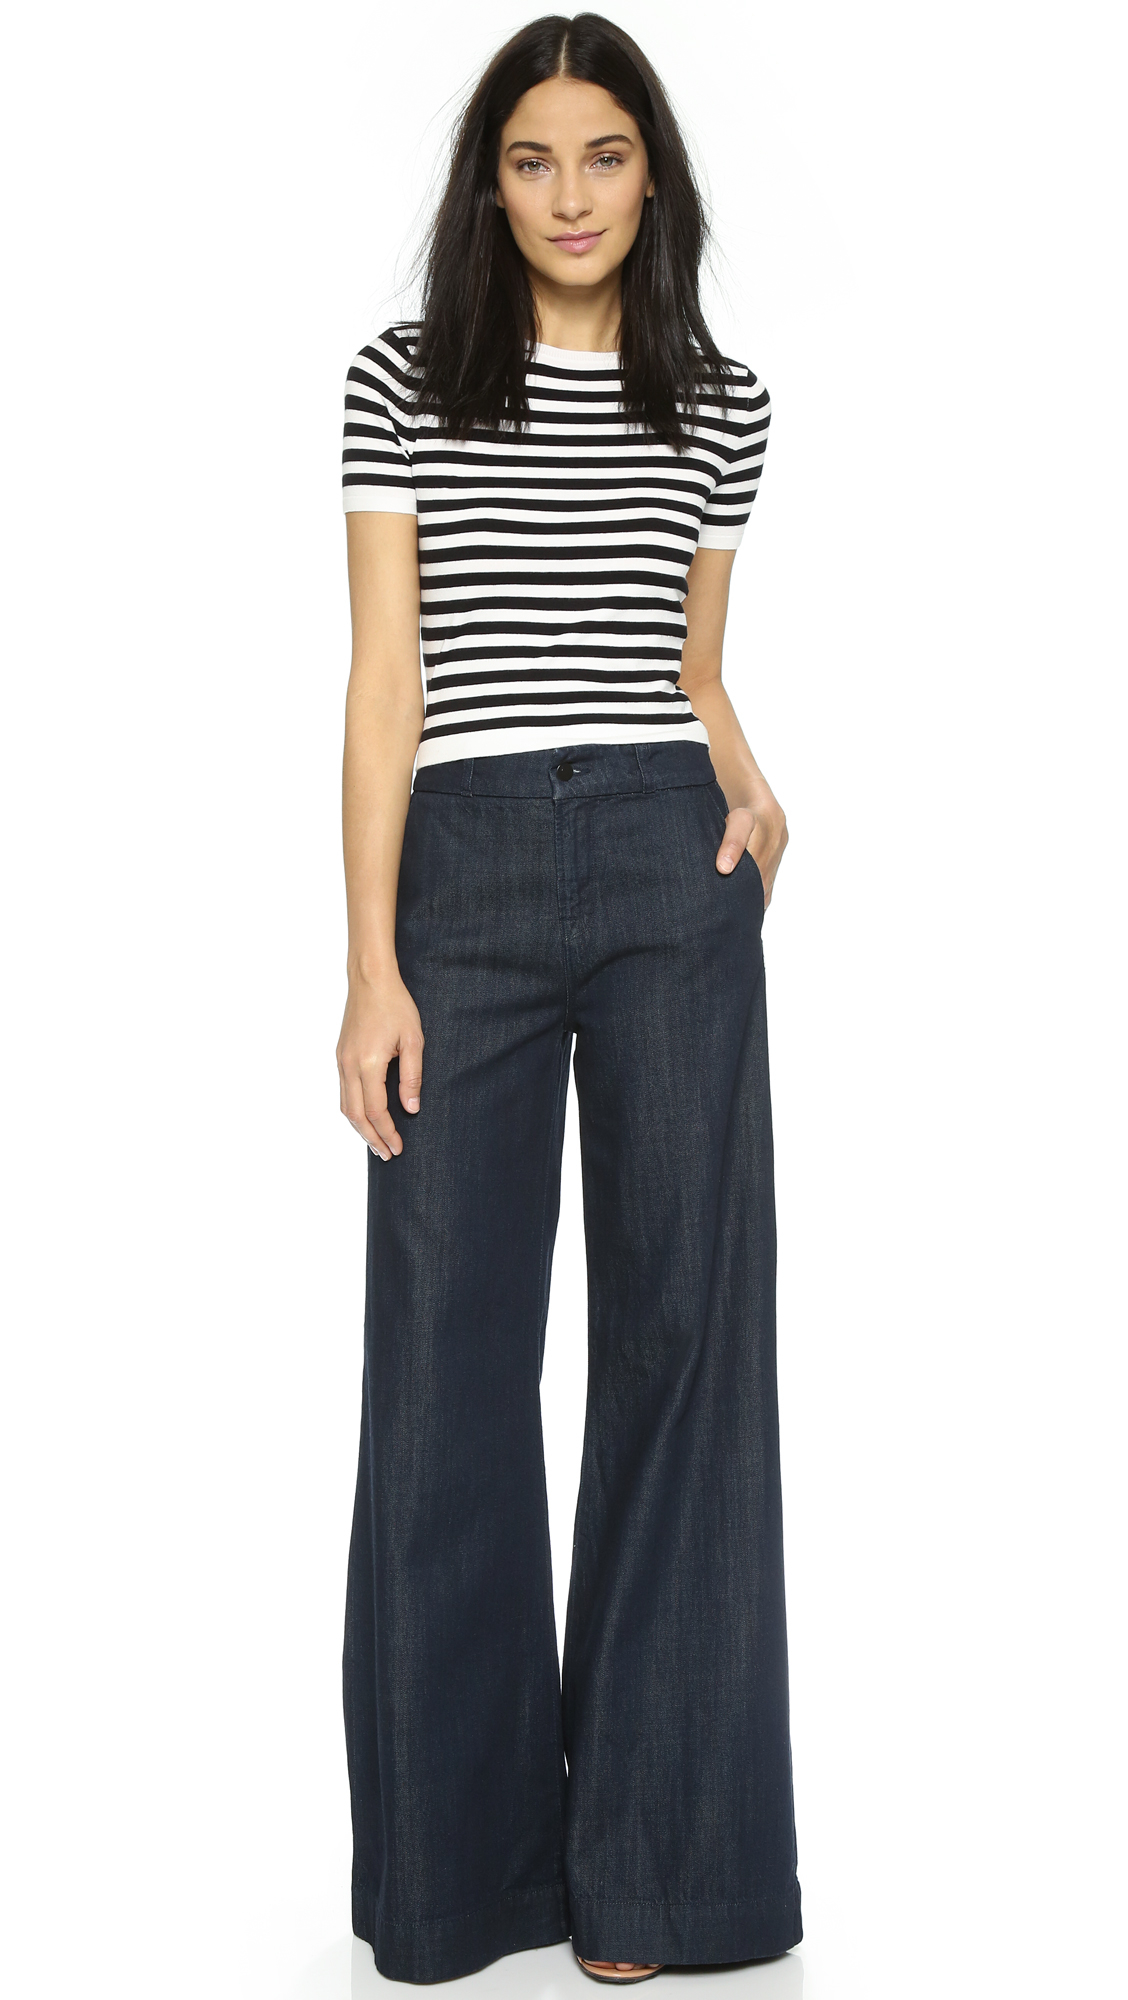 J Brand Melody High Rise Wide Leg Jeans in Blue - Lyst